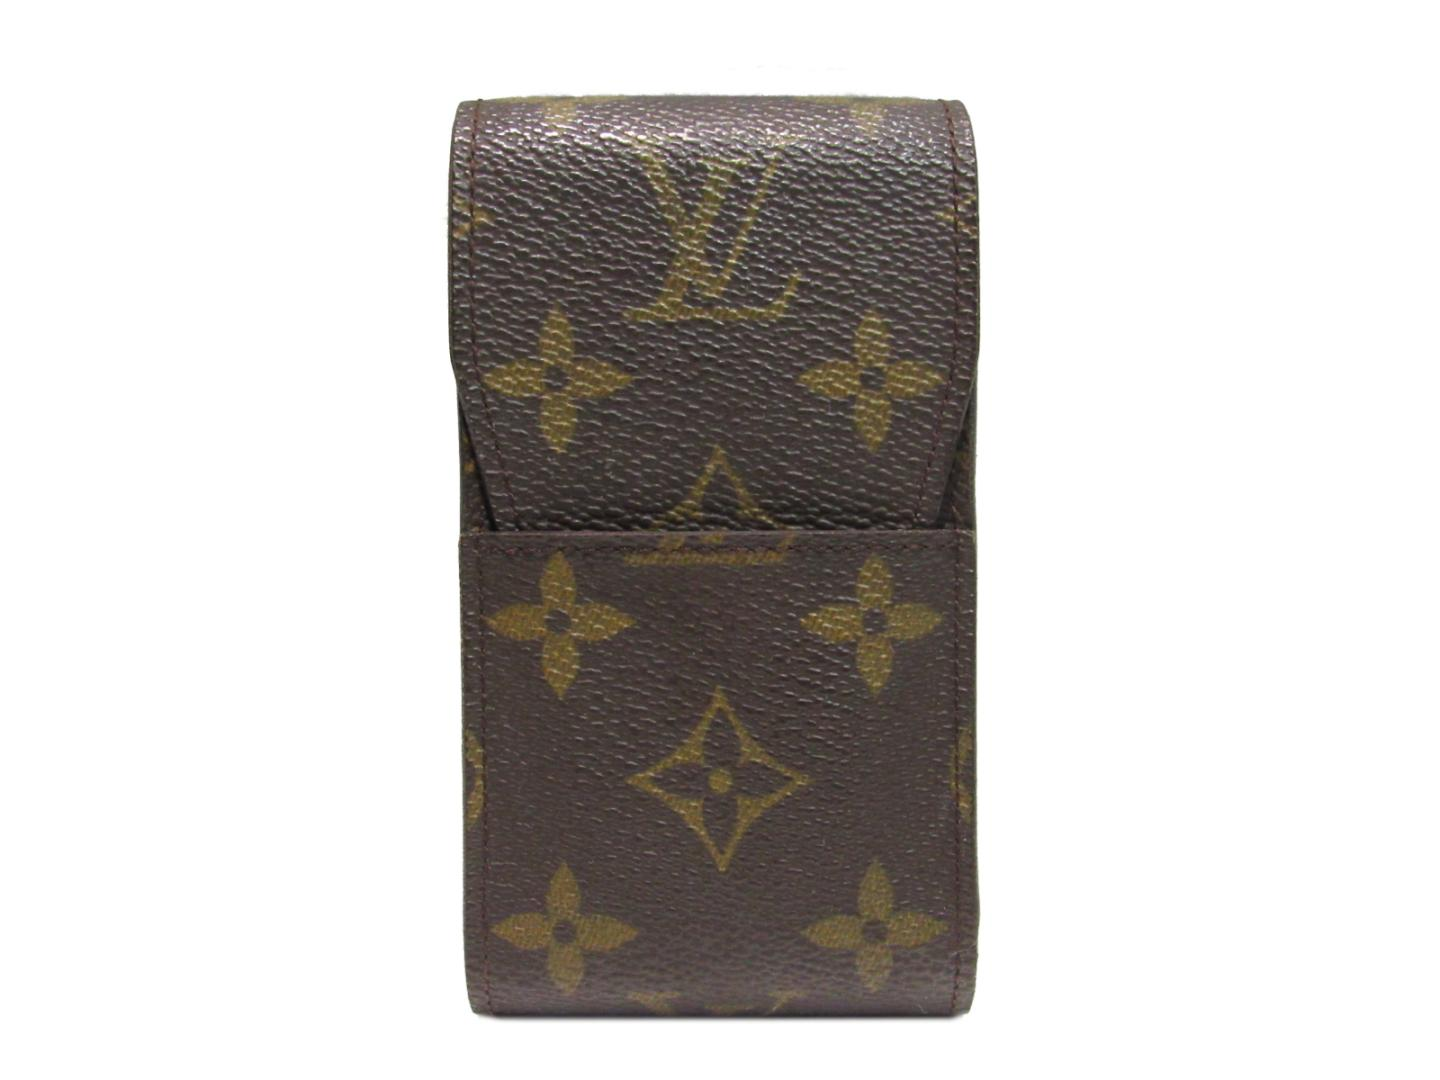 a8931e70582 Authentic LOUIS VUITTON Etui cigarette case tobacco case M63024 Monogram